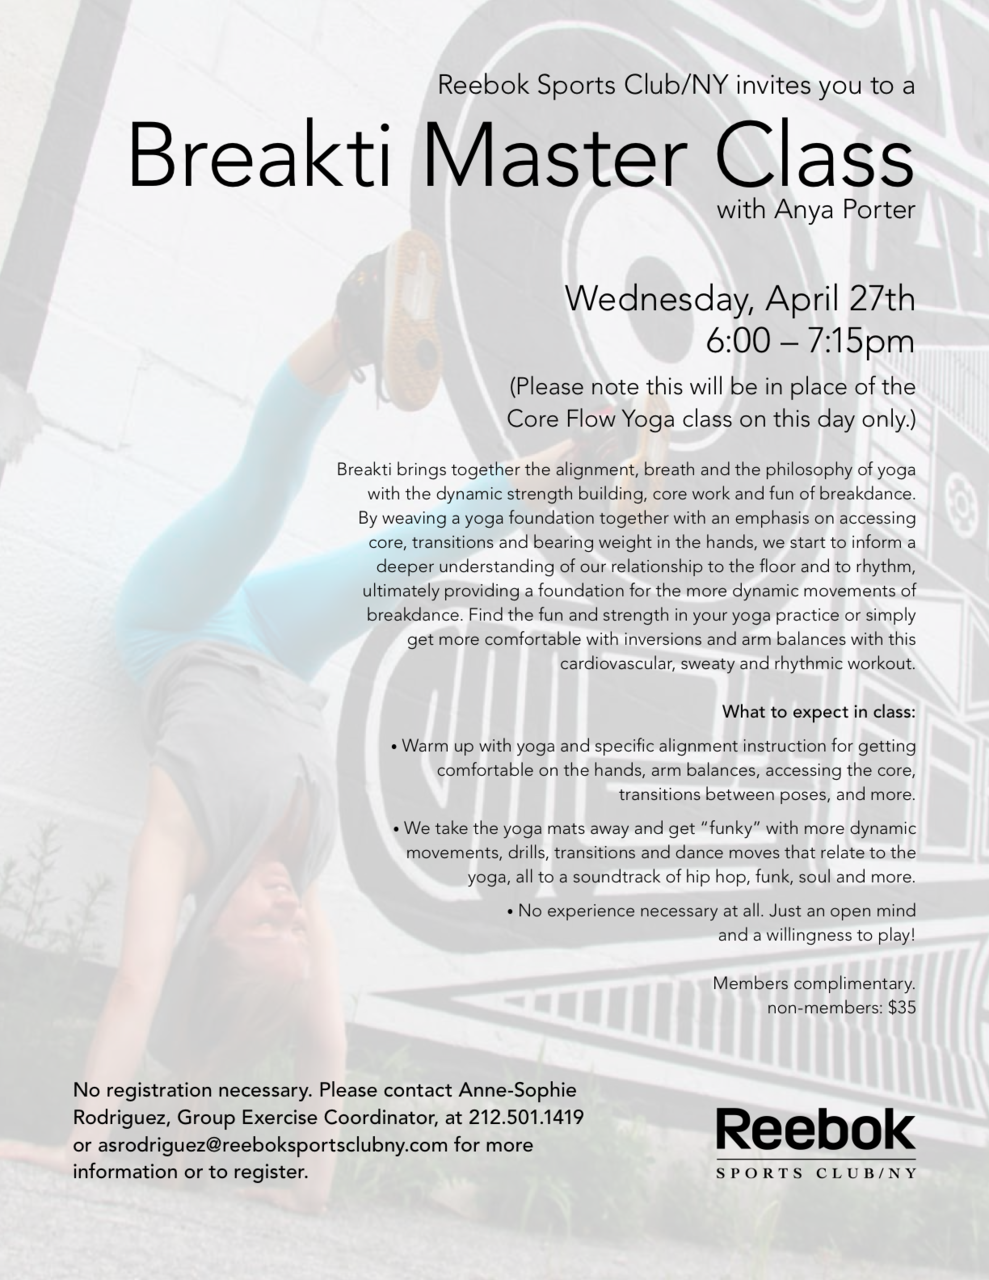 Breakti Master Class at Reebok Sports Club/NY   Contact Anne-Sophie Rodriguez at 212.501.1419 Register early, space is extremely limited!   $35